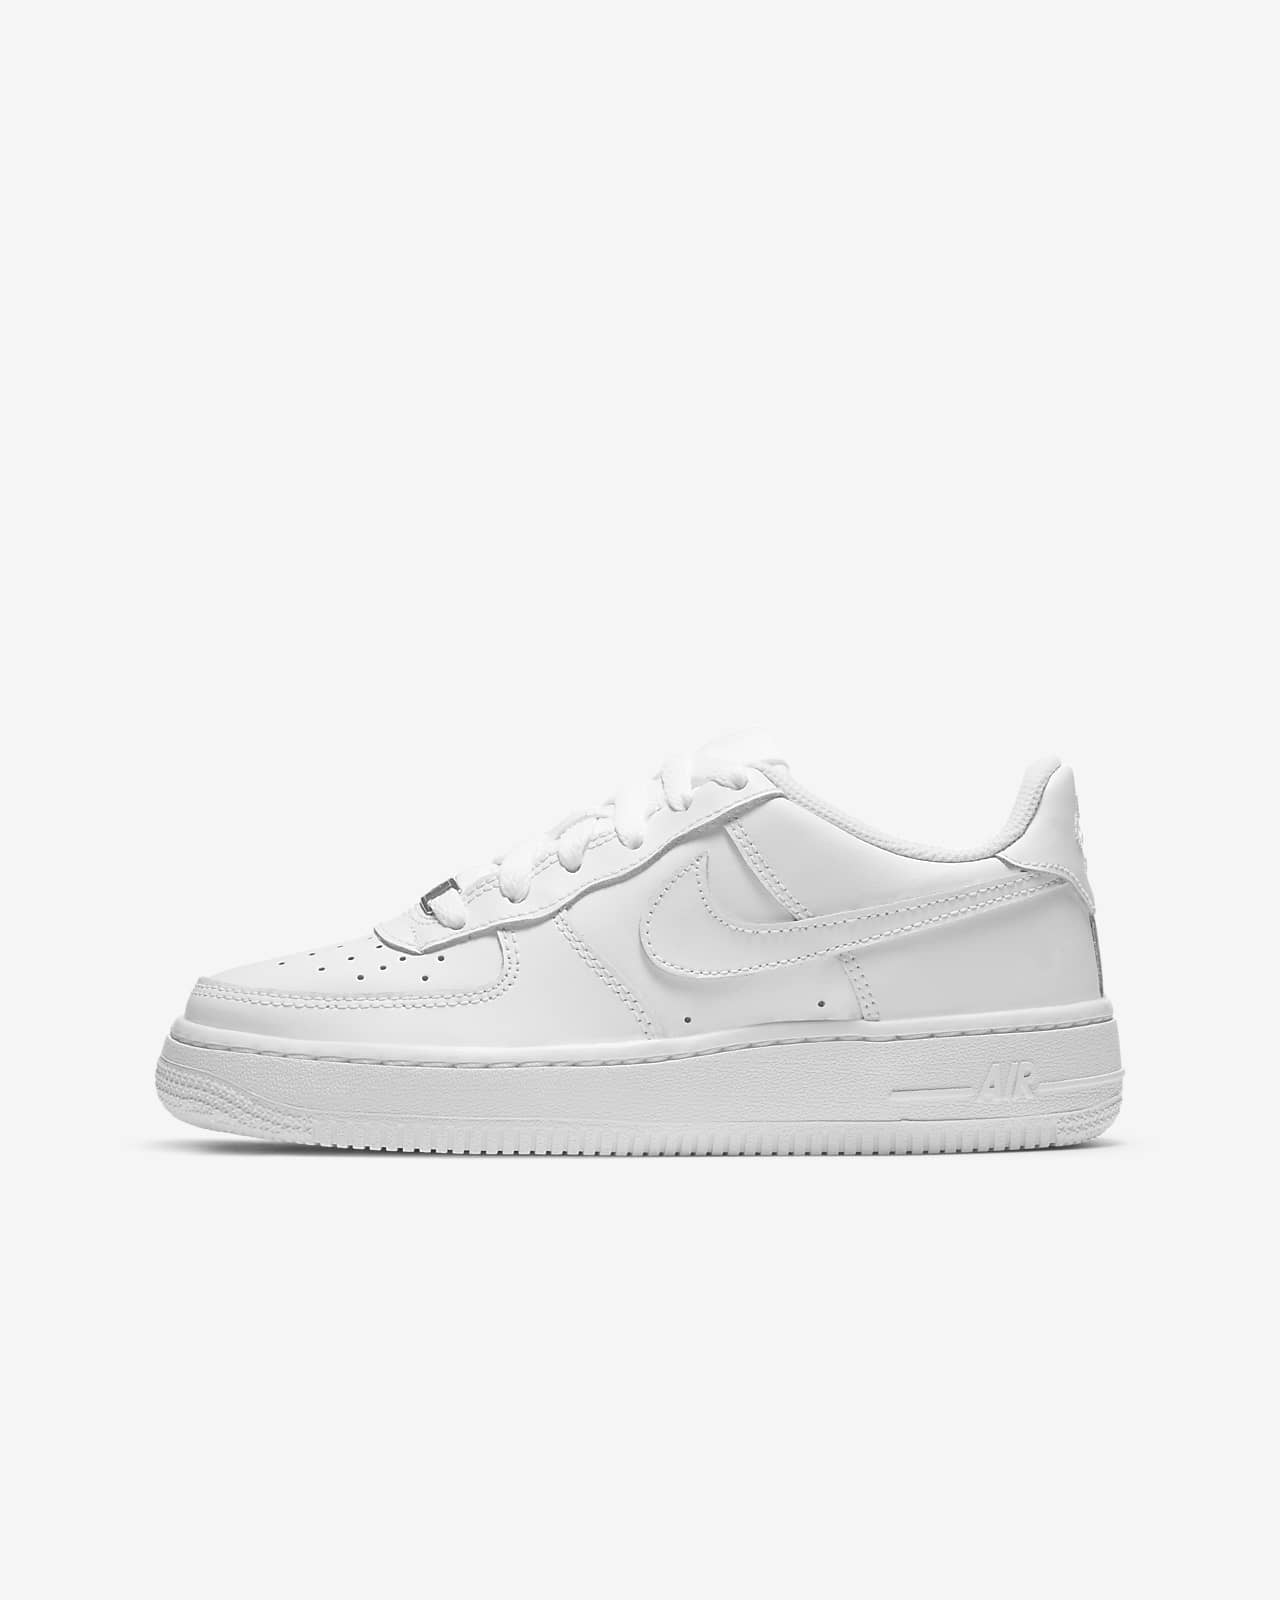 sind nike air force in